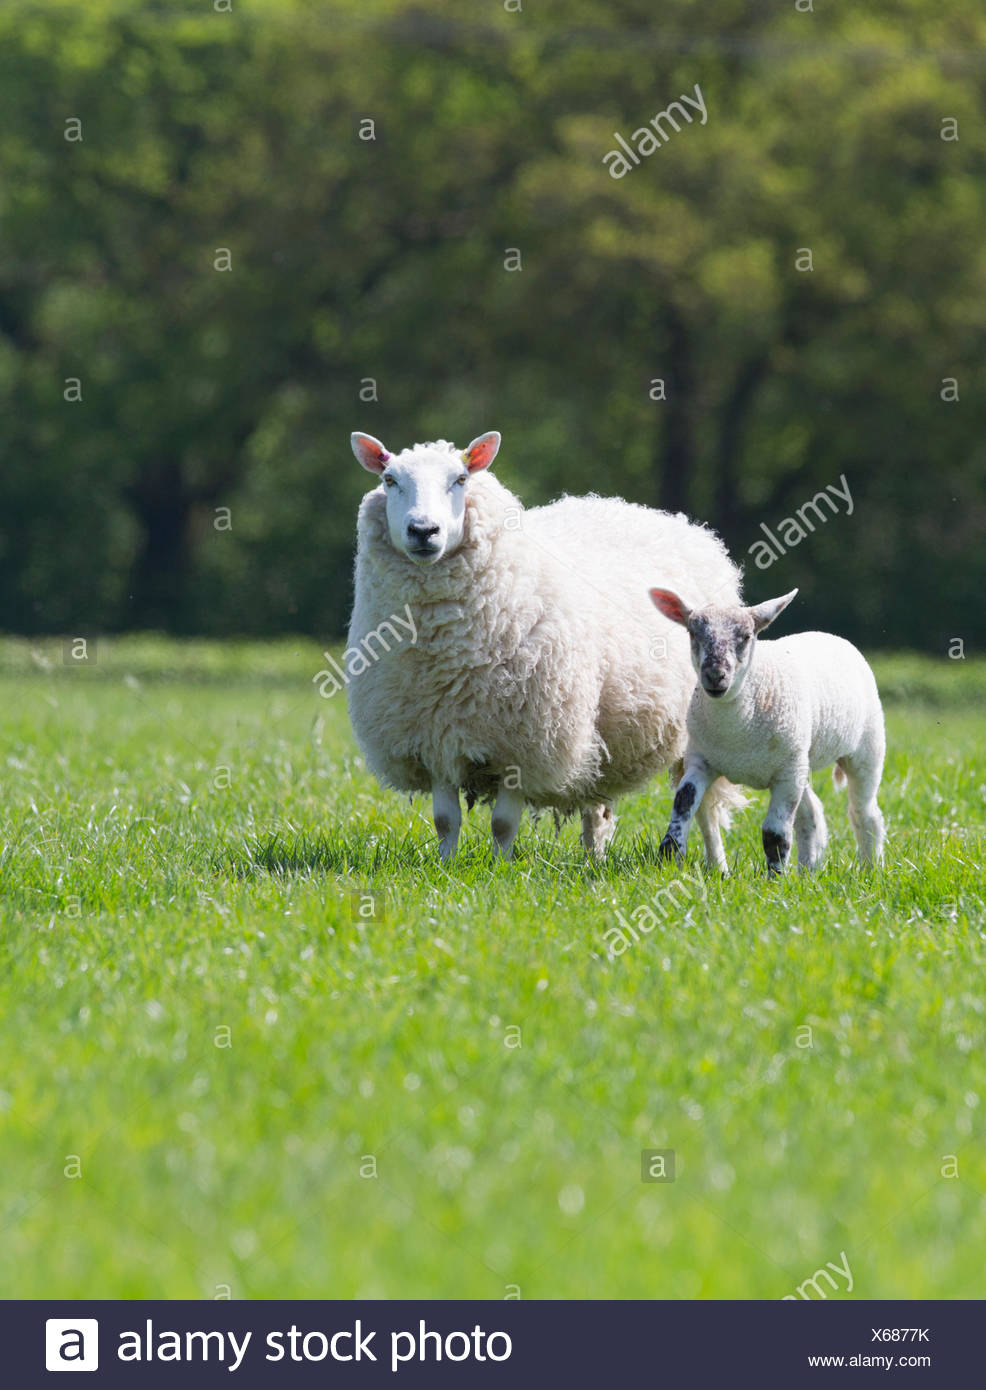 Portrait sheep and lamb in sunny green spring field - Stock Image